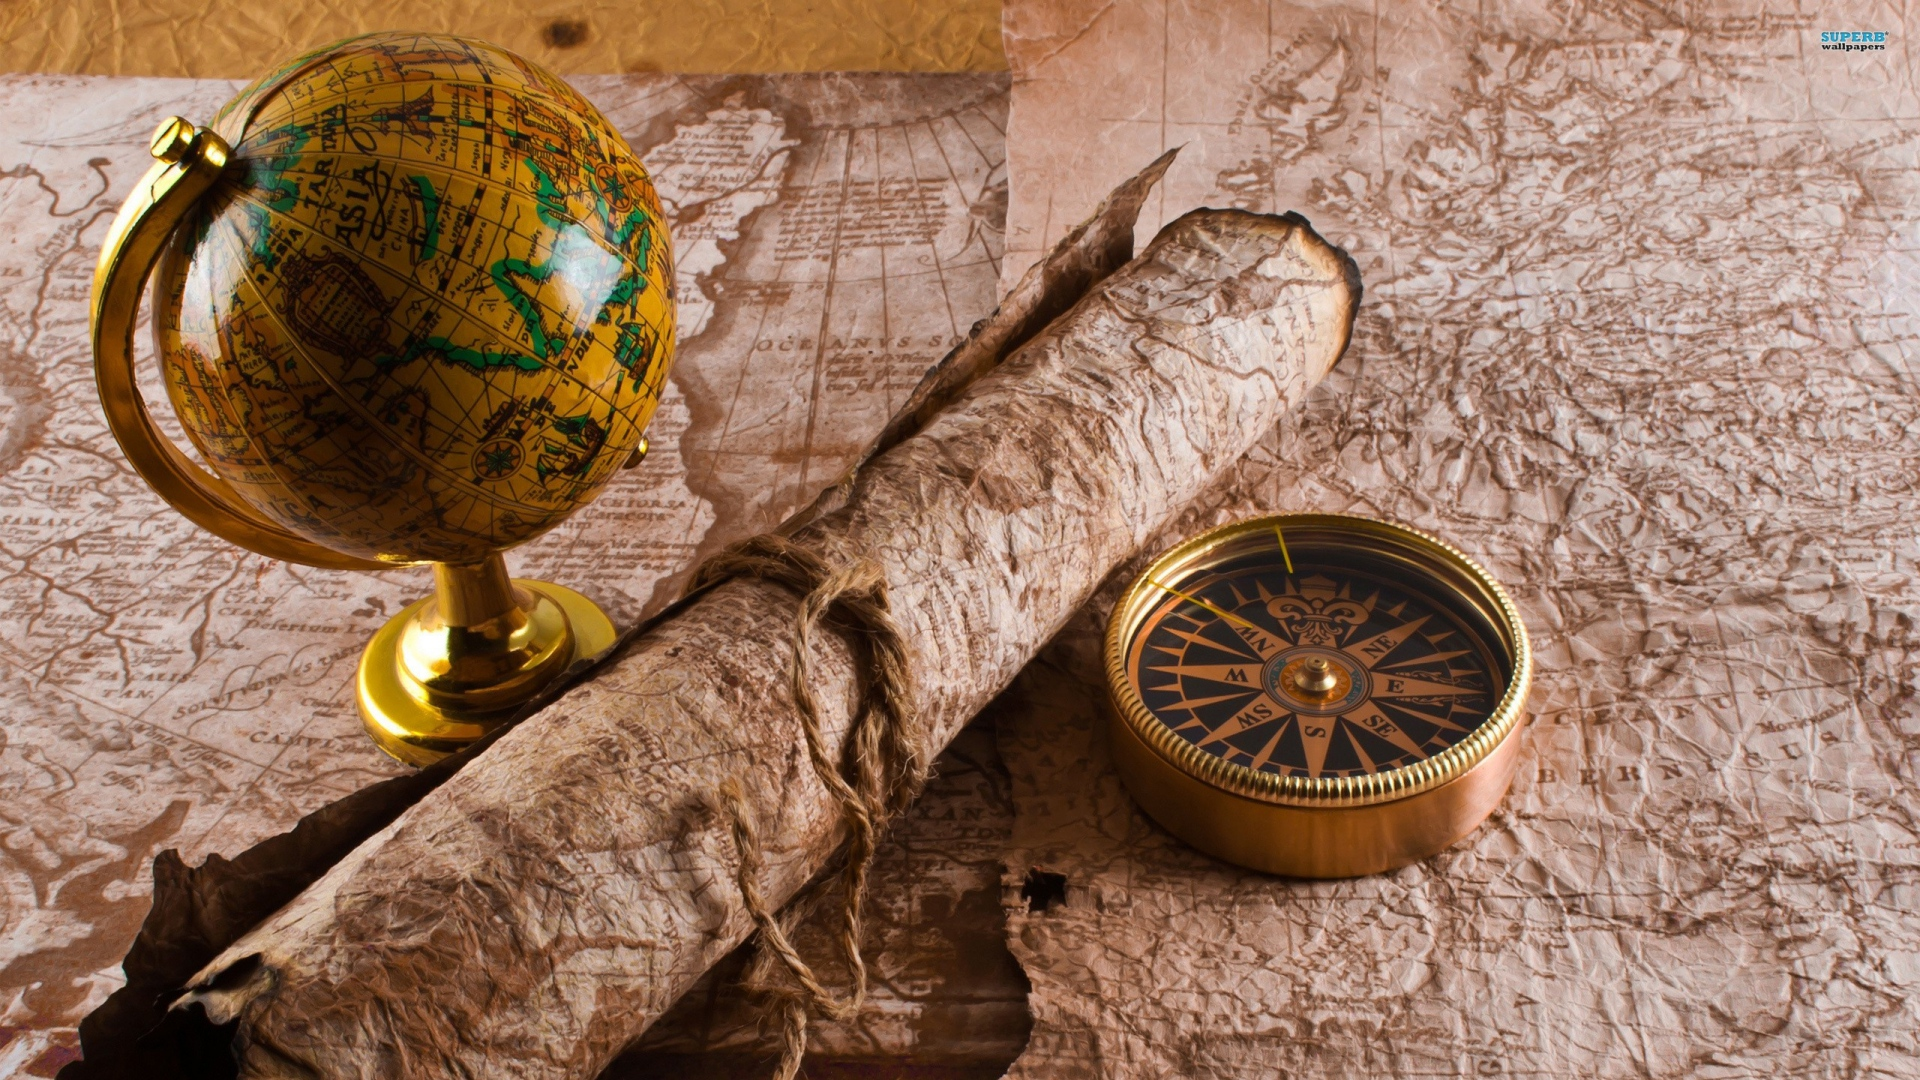 Free Download Wallpaper 1920x1080 Globe Map Table Travel Full Hd 1080p Hd 1920x1080 For Your Desktop Mobile Tablet Explore 48 1920x1080 Hd Wallpapers Travel World Wallpaper Travel Wallpaper